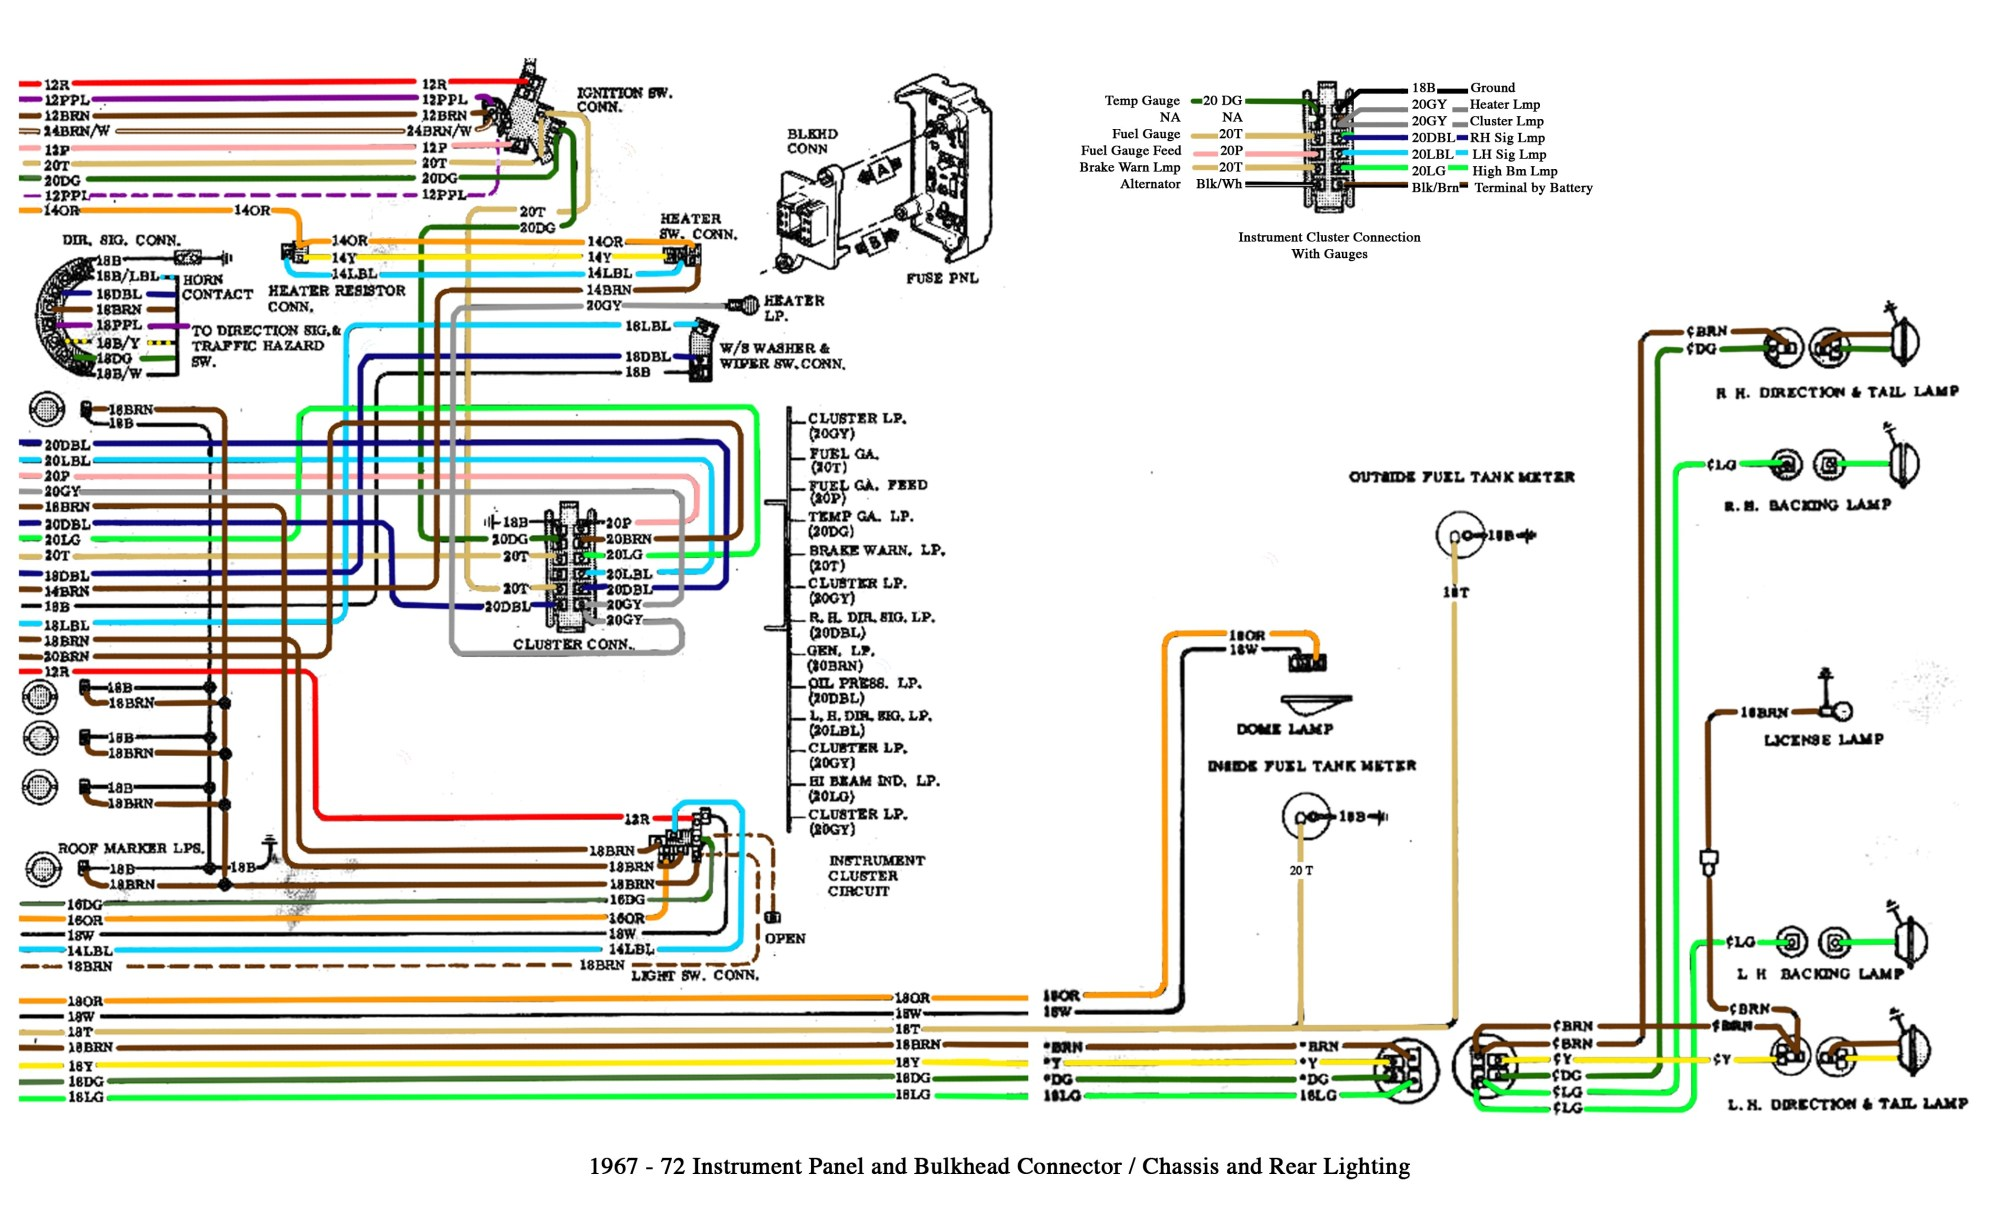 hight resolution of 1965 chevy truck tail light wiring diagram switch diagram u2022 rh 140 82 24 126